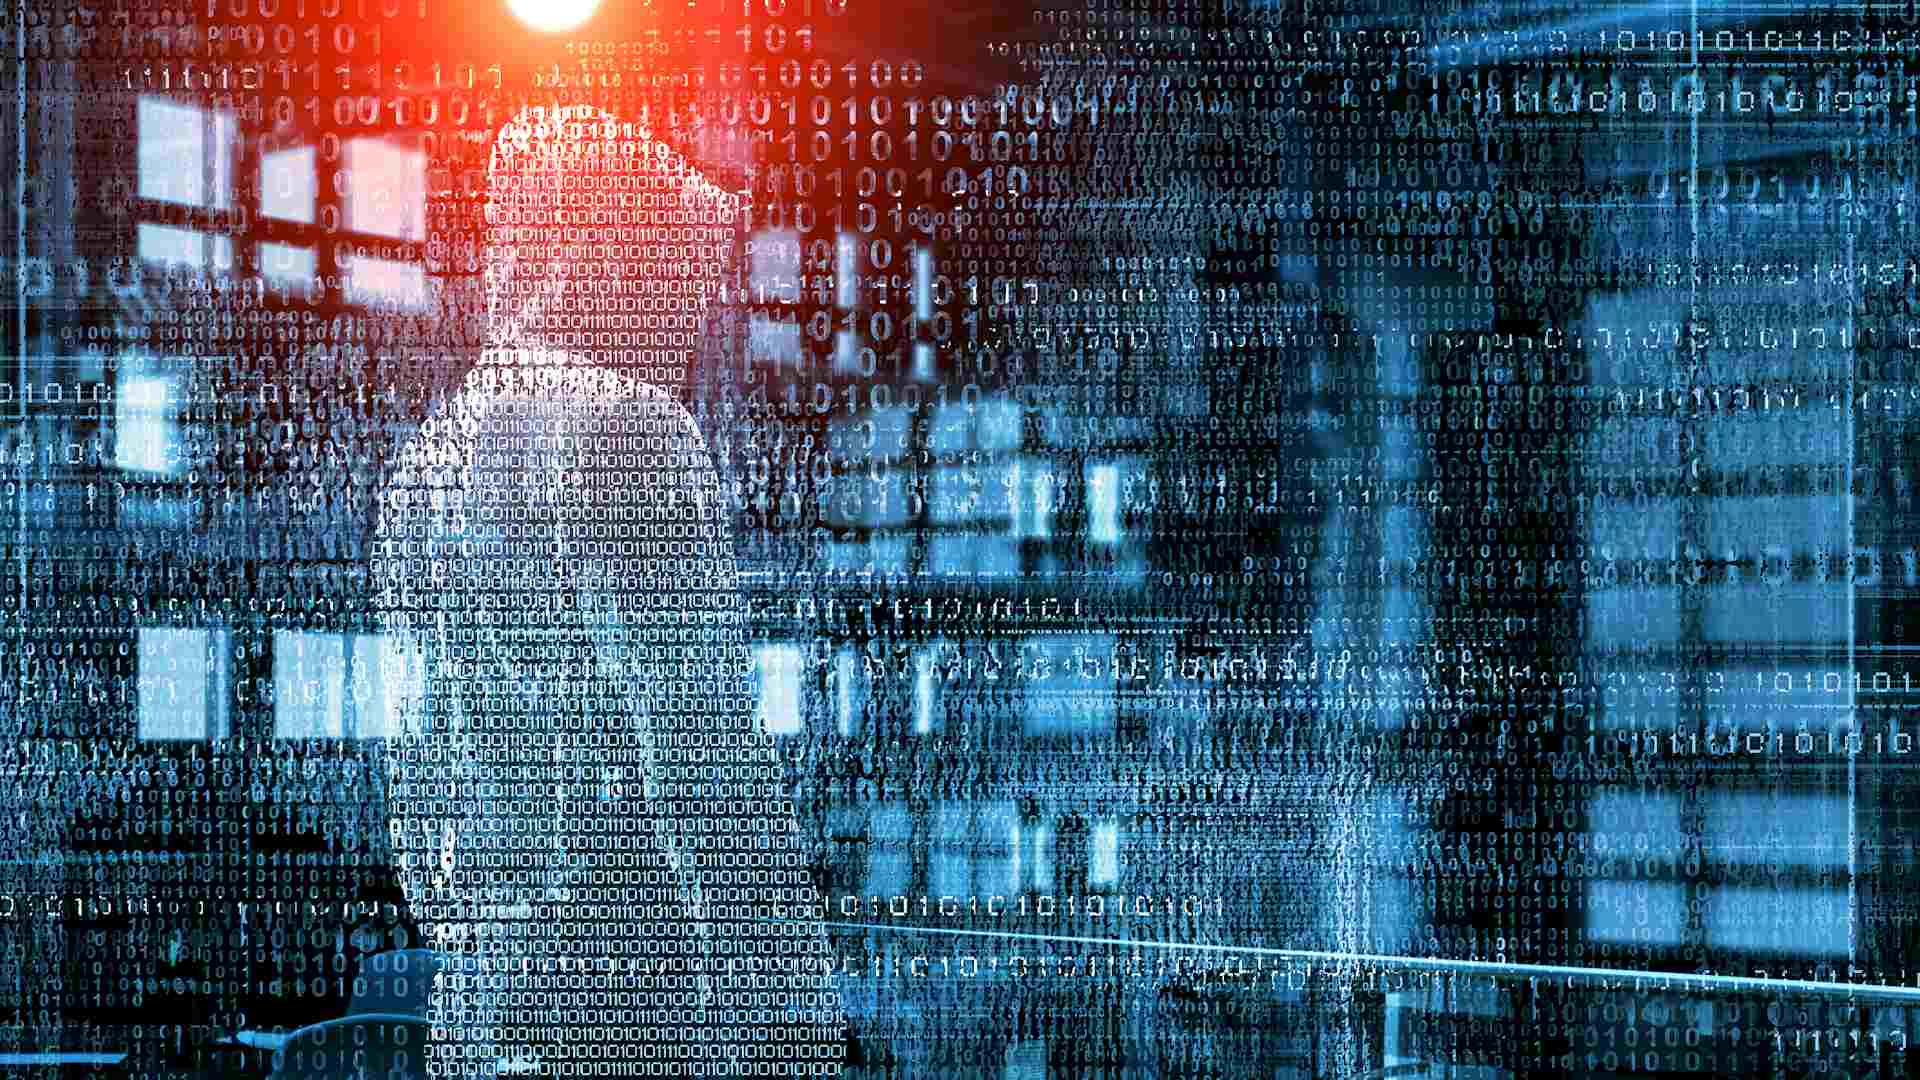 Five privileged account management tips from your attackers